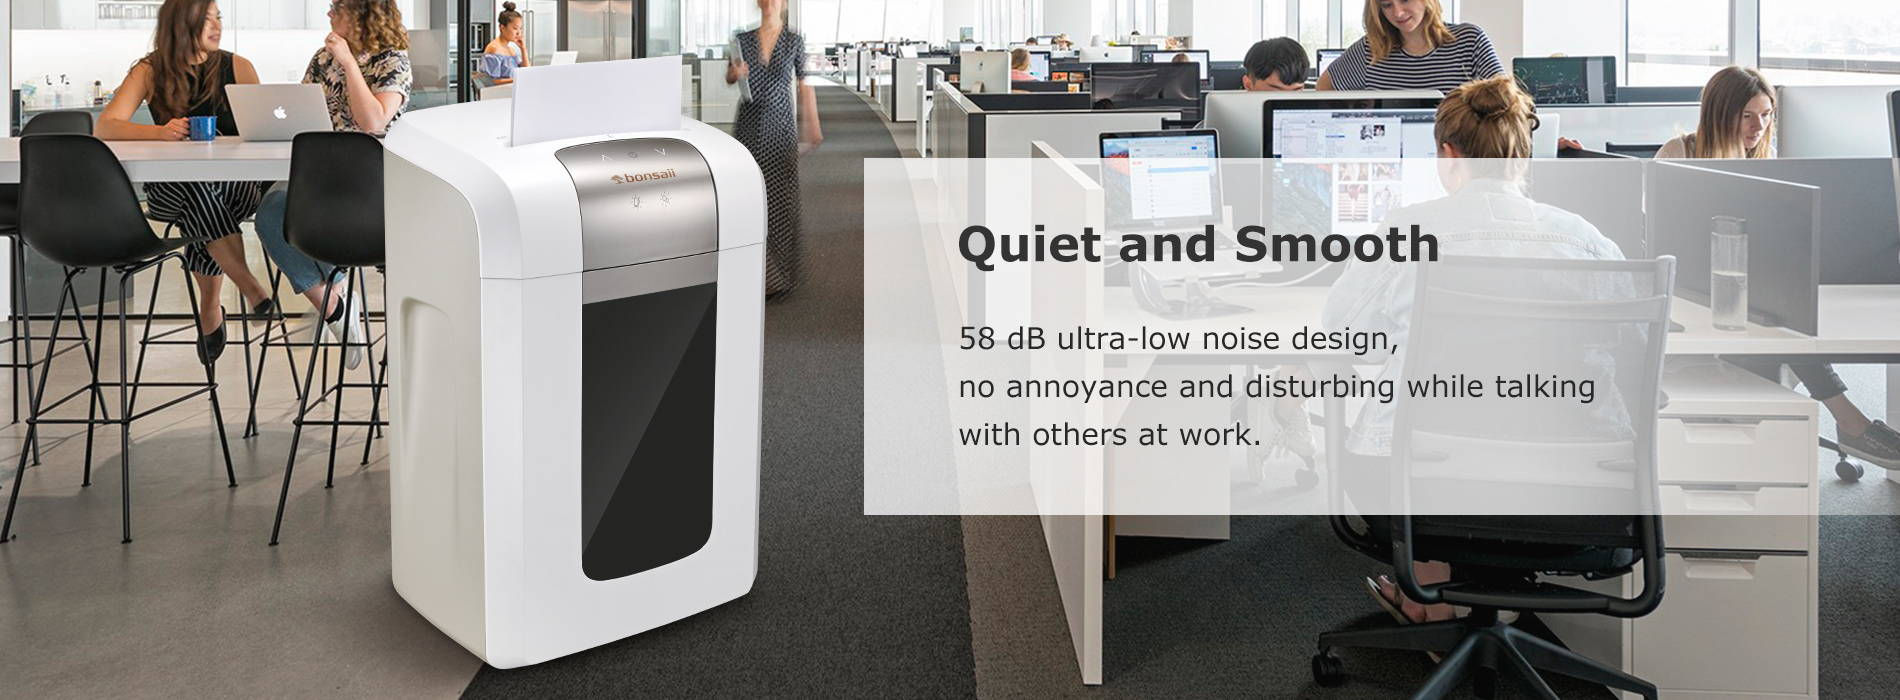 Quiet and Smooth 58 dB ultra-low noise design, no annoyance and disturbing while talking with others at work.